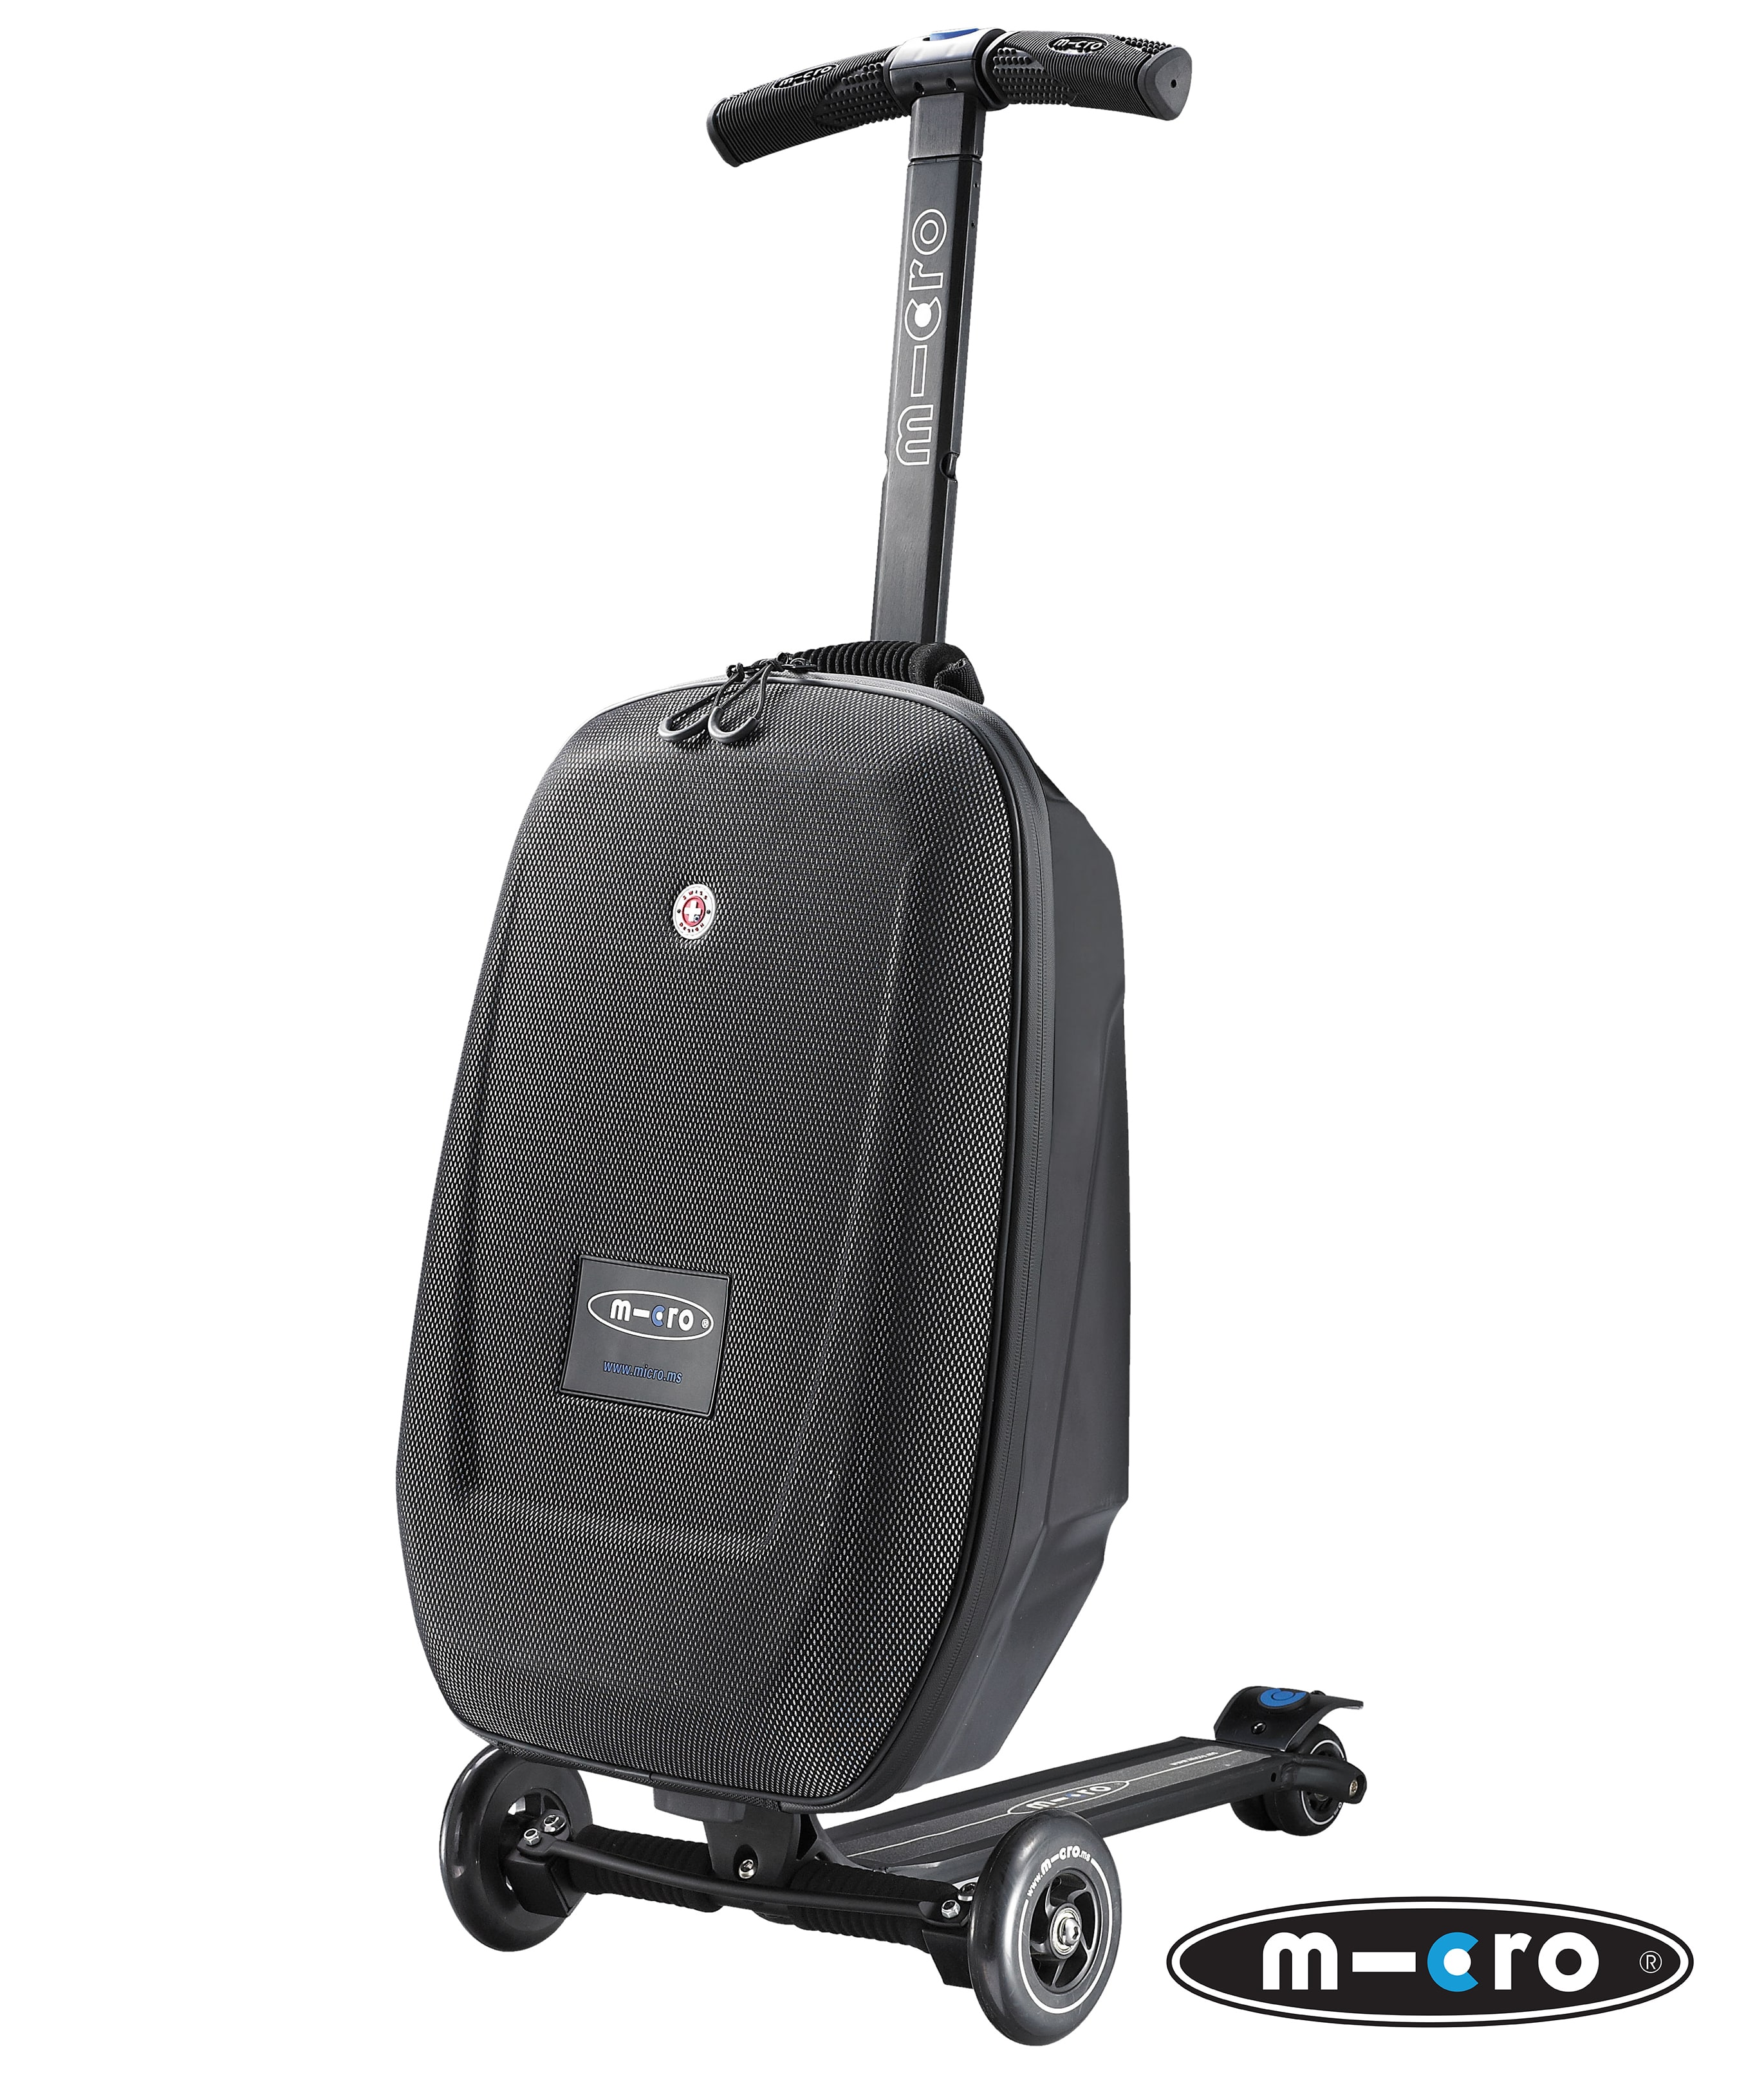 micro 3 in 1 luggage scooter black complete scooters. Black Bedroom Furniture Sets. Home Design Ideas